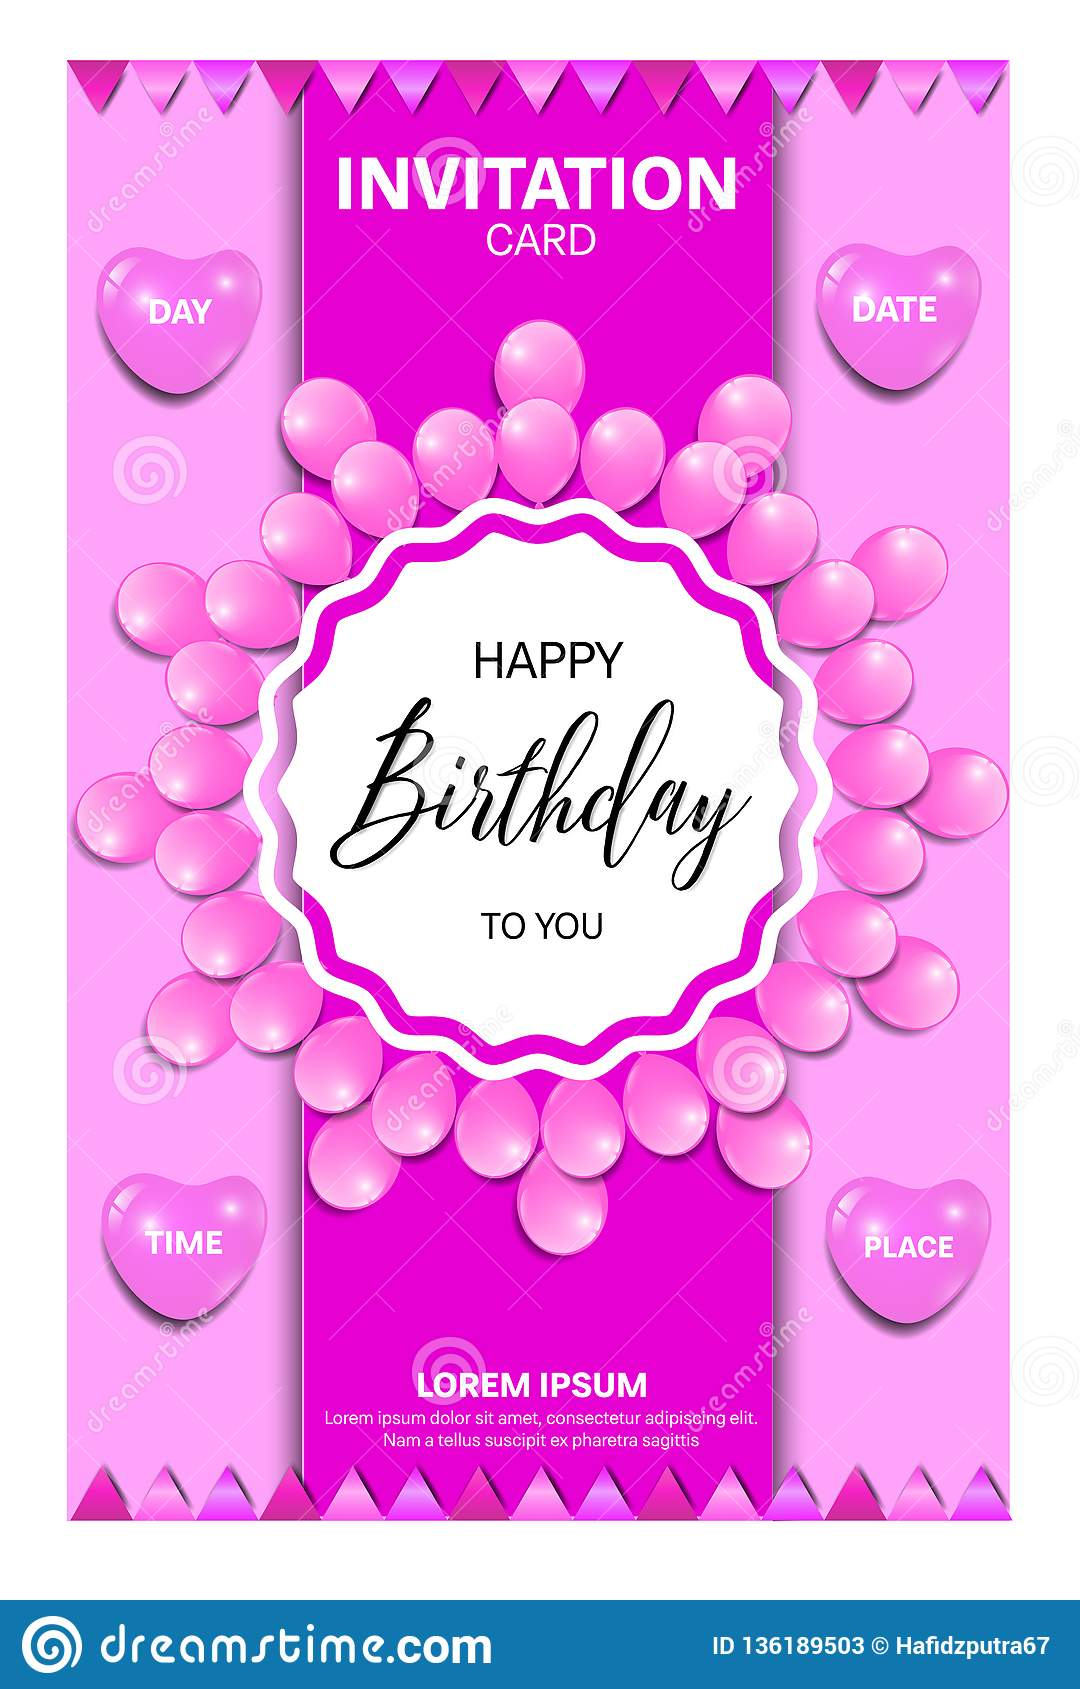 Birthday Invitation Card With Pink Colors Stock Vector